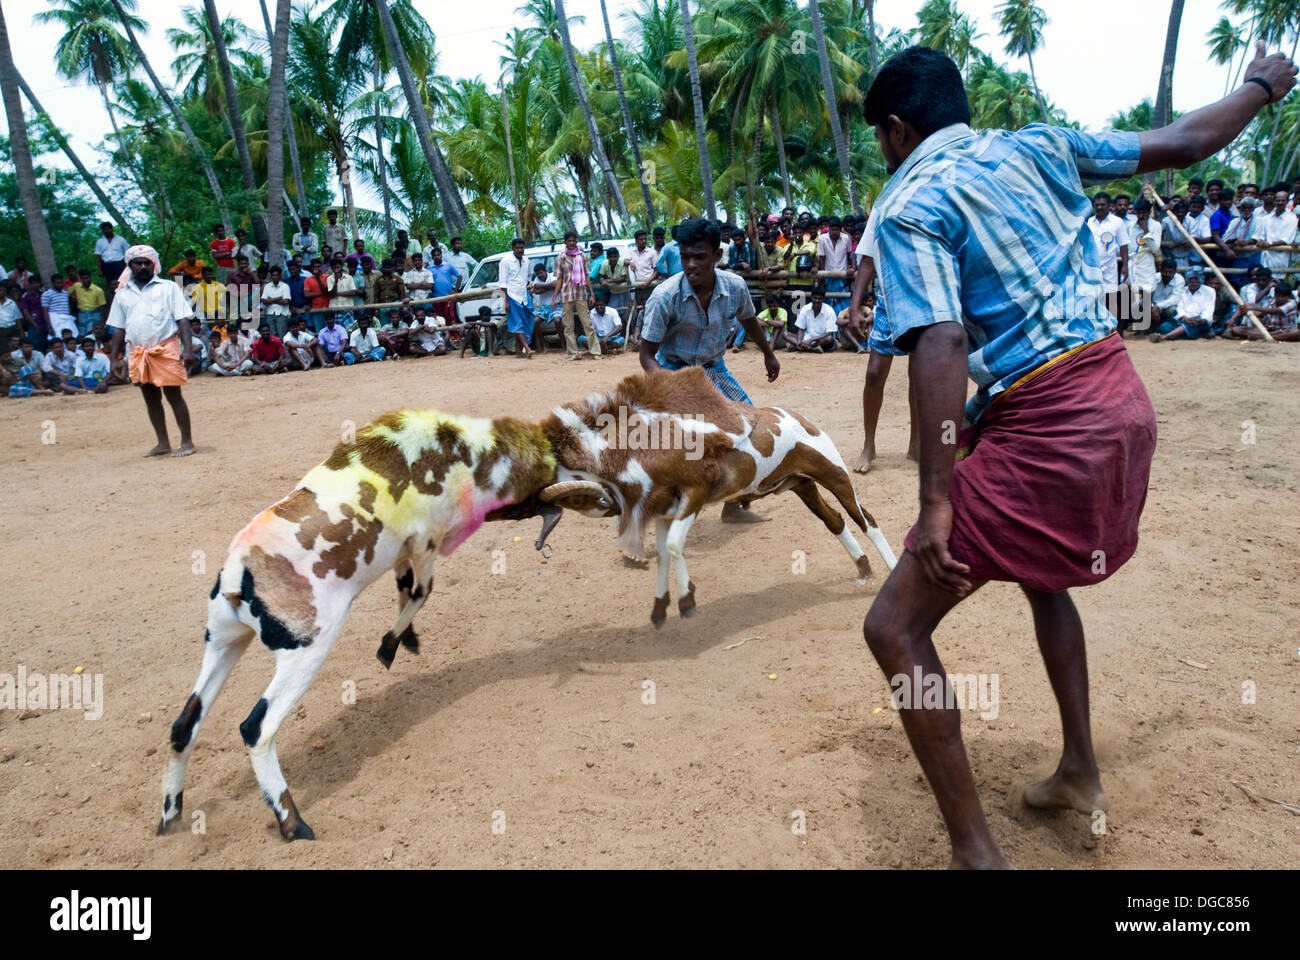 kidaai Muttu' Goat fighting - fight between two goats at a ...